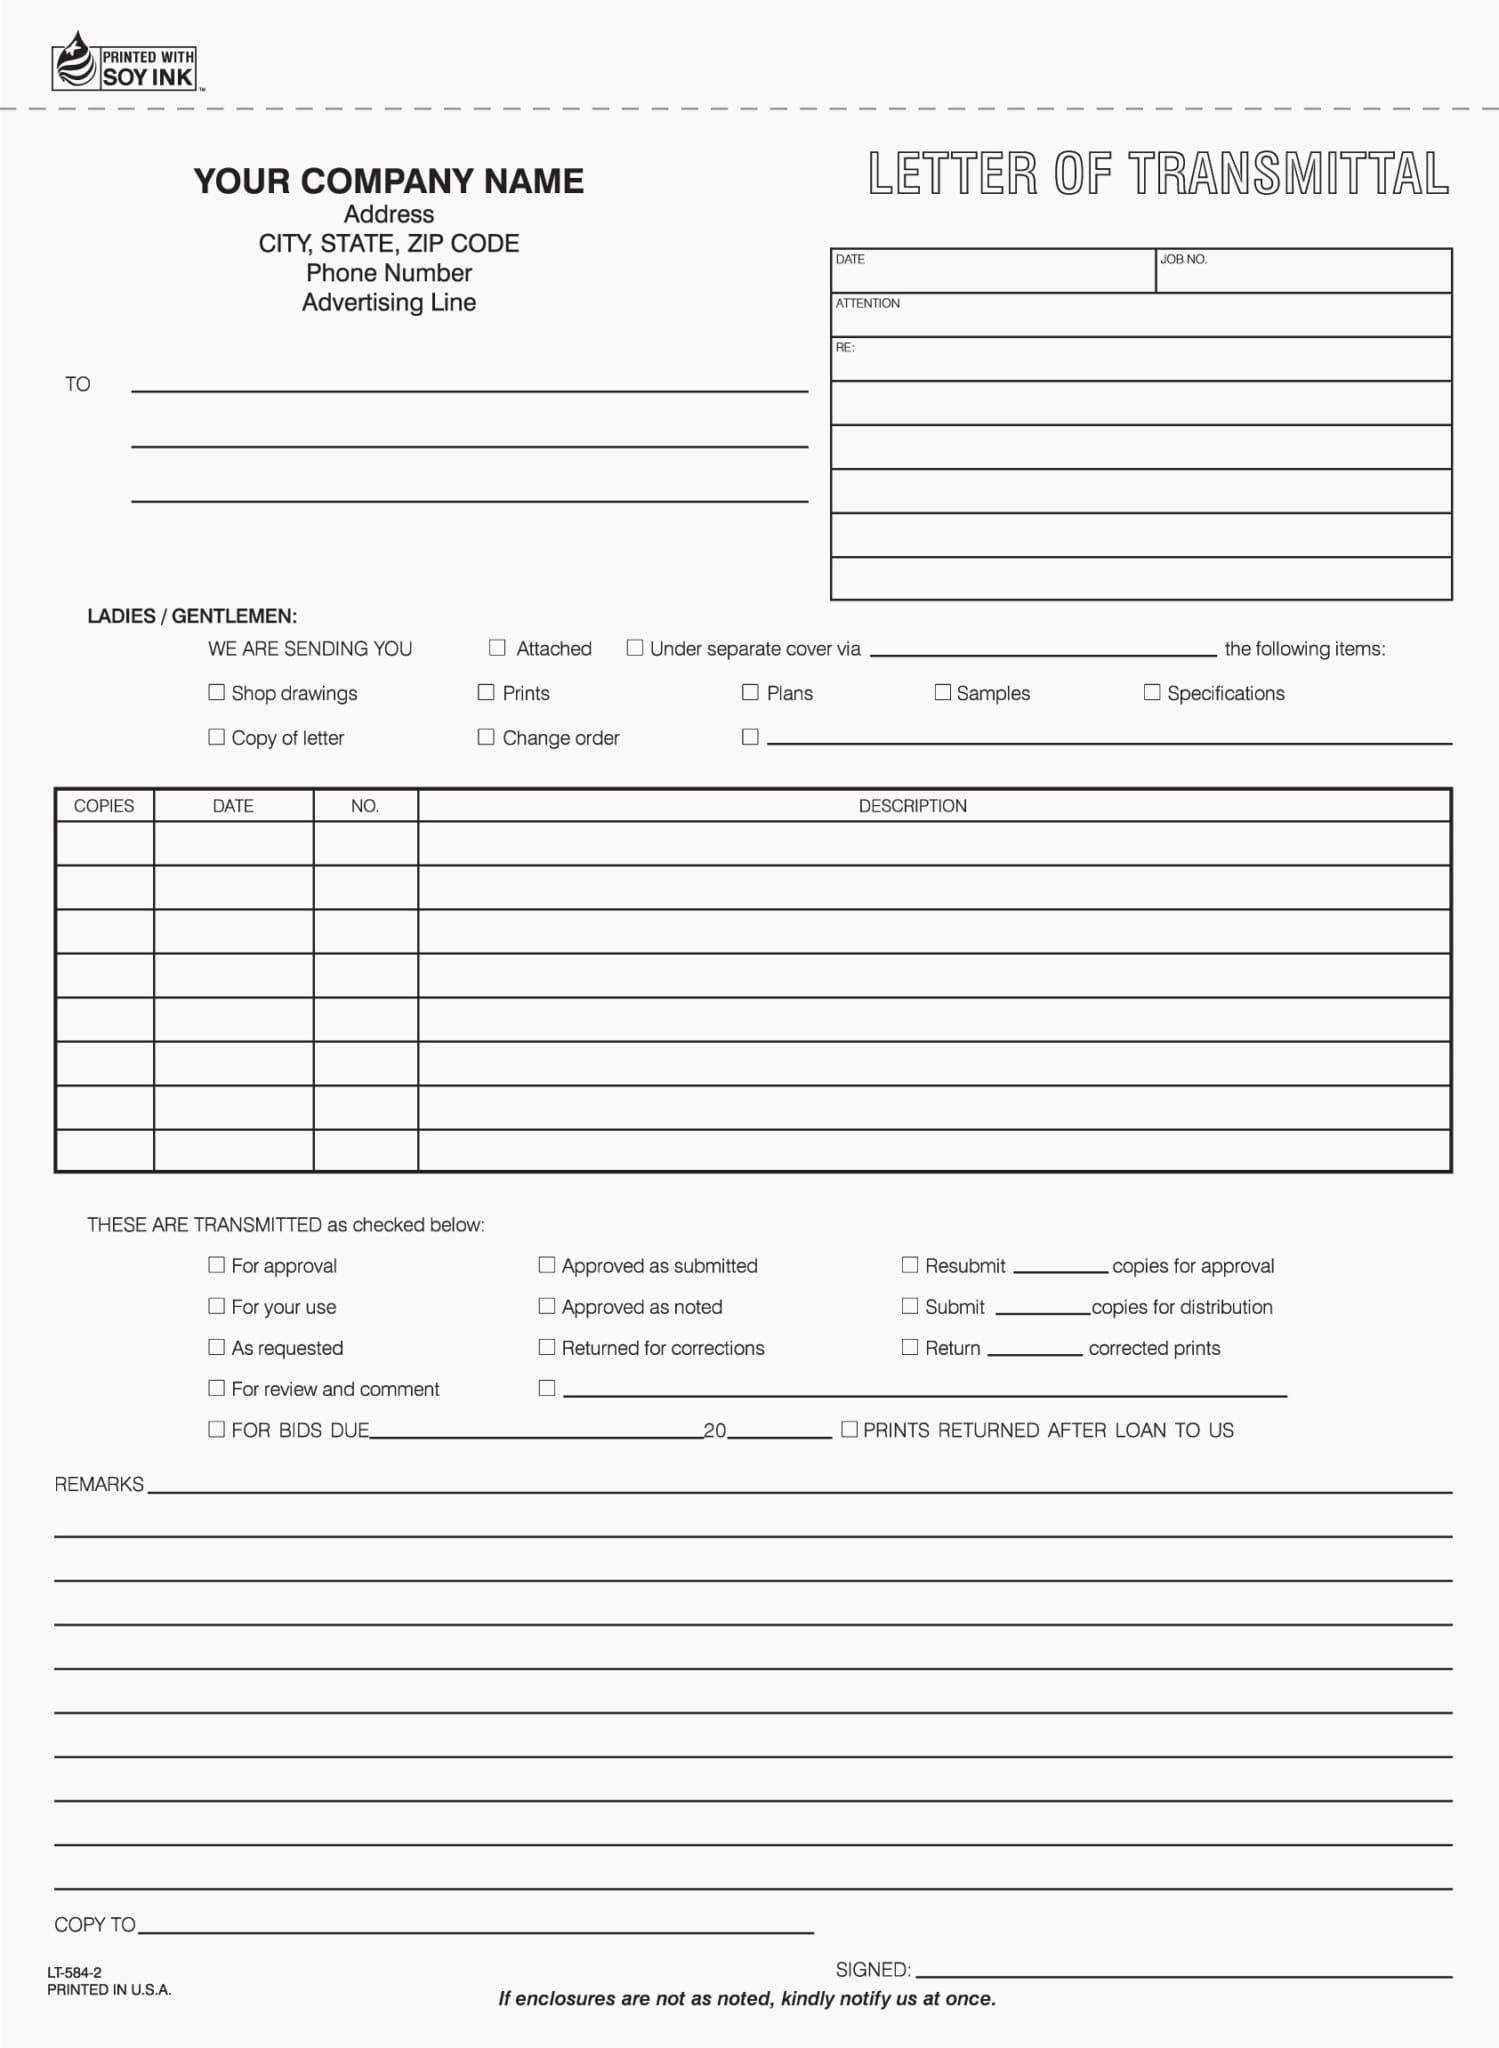 Letter Of Transmittal Form LT 584 2